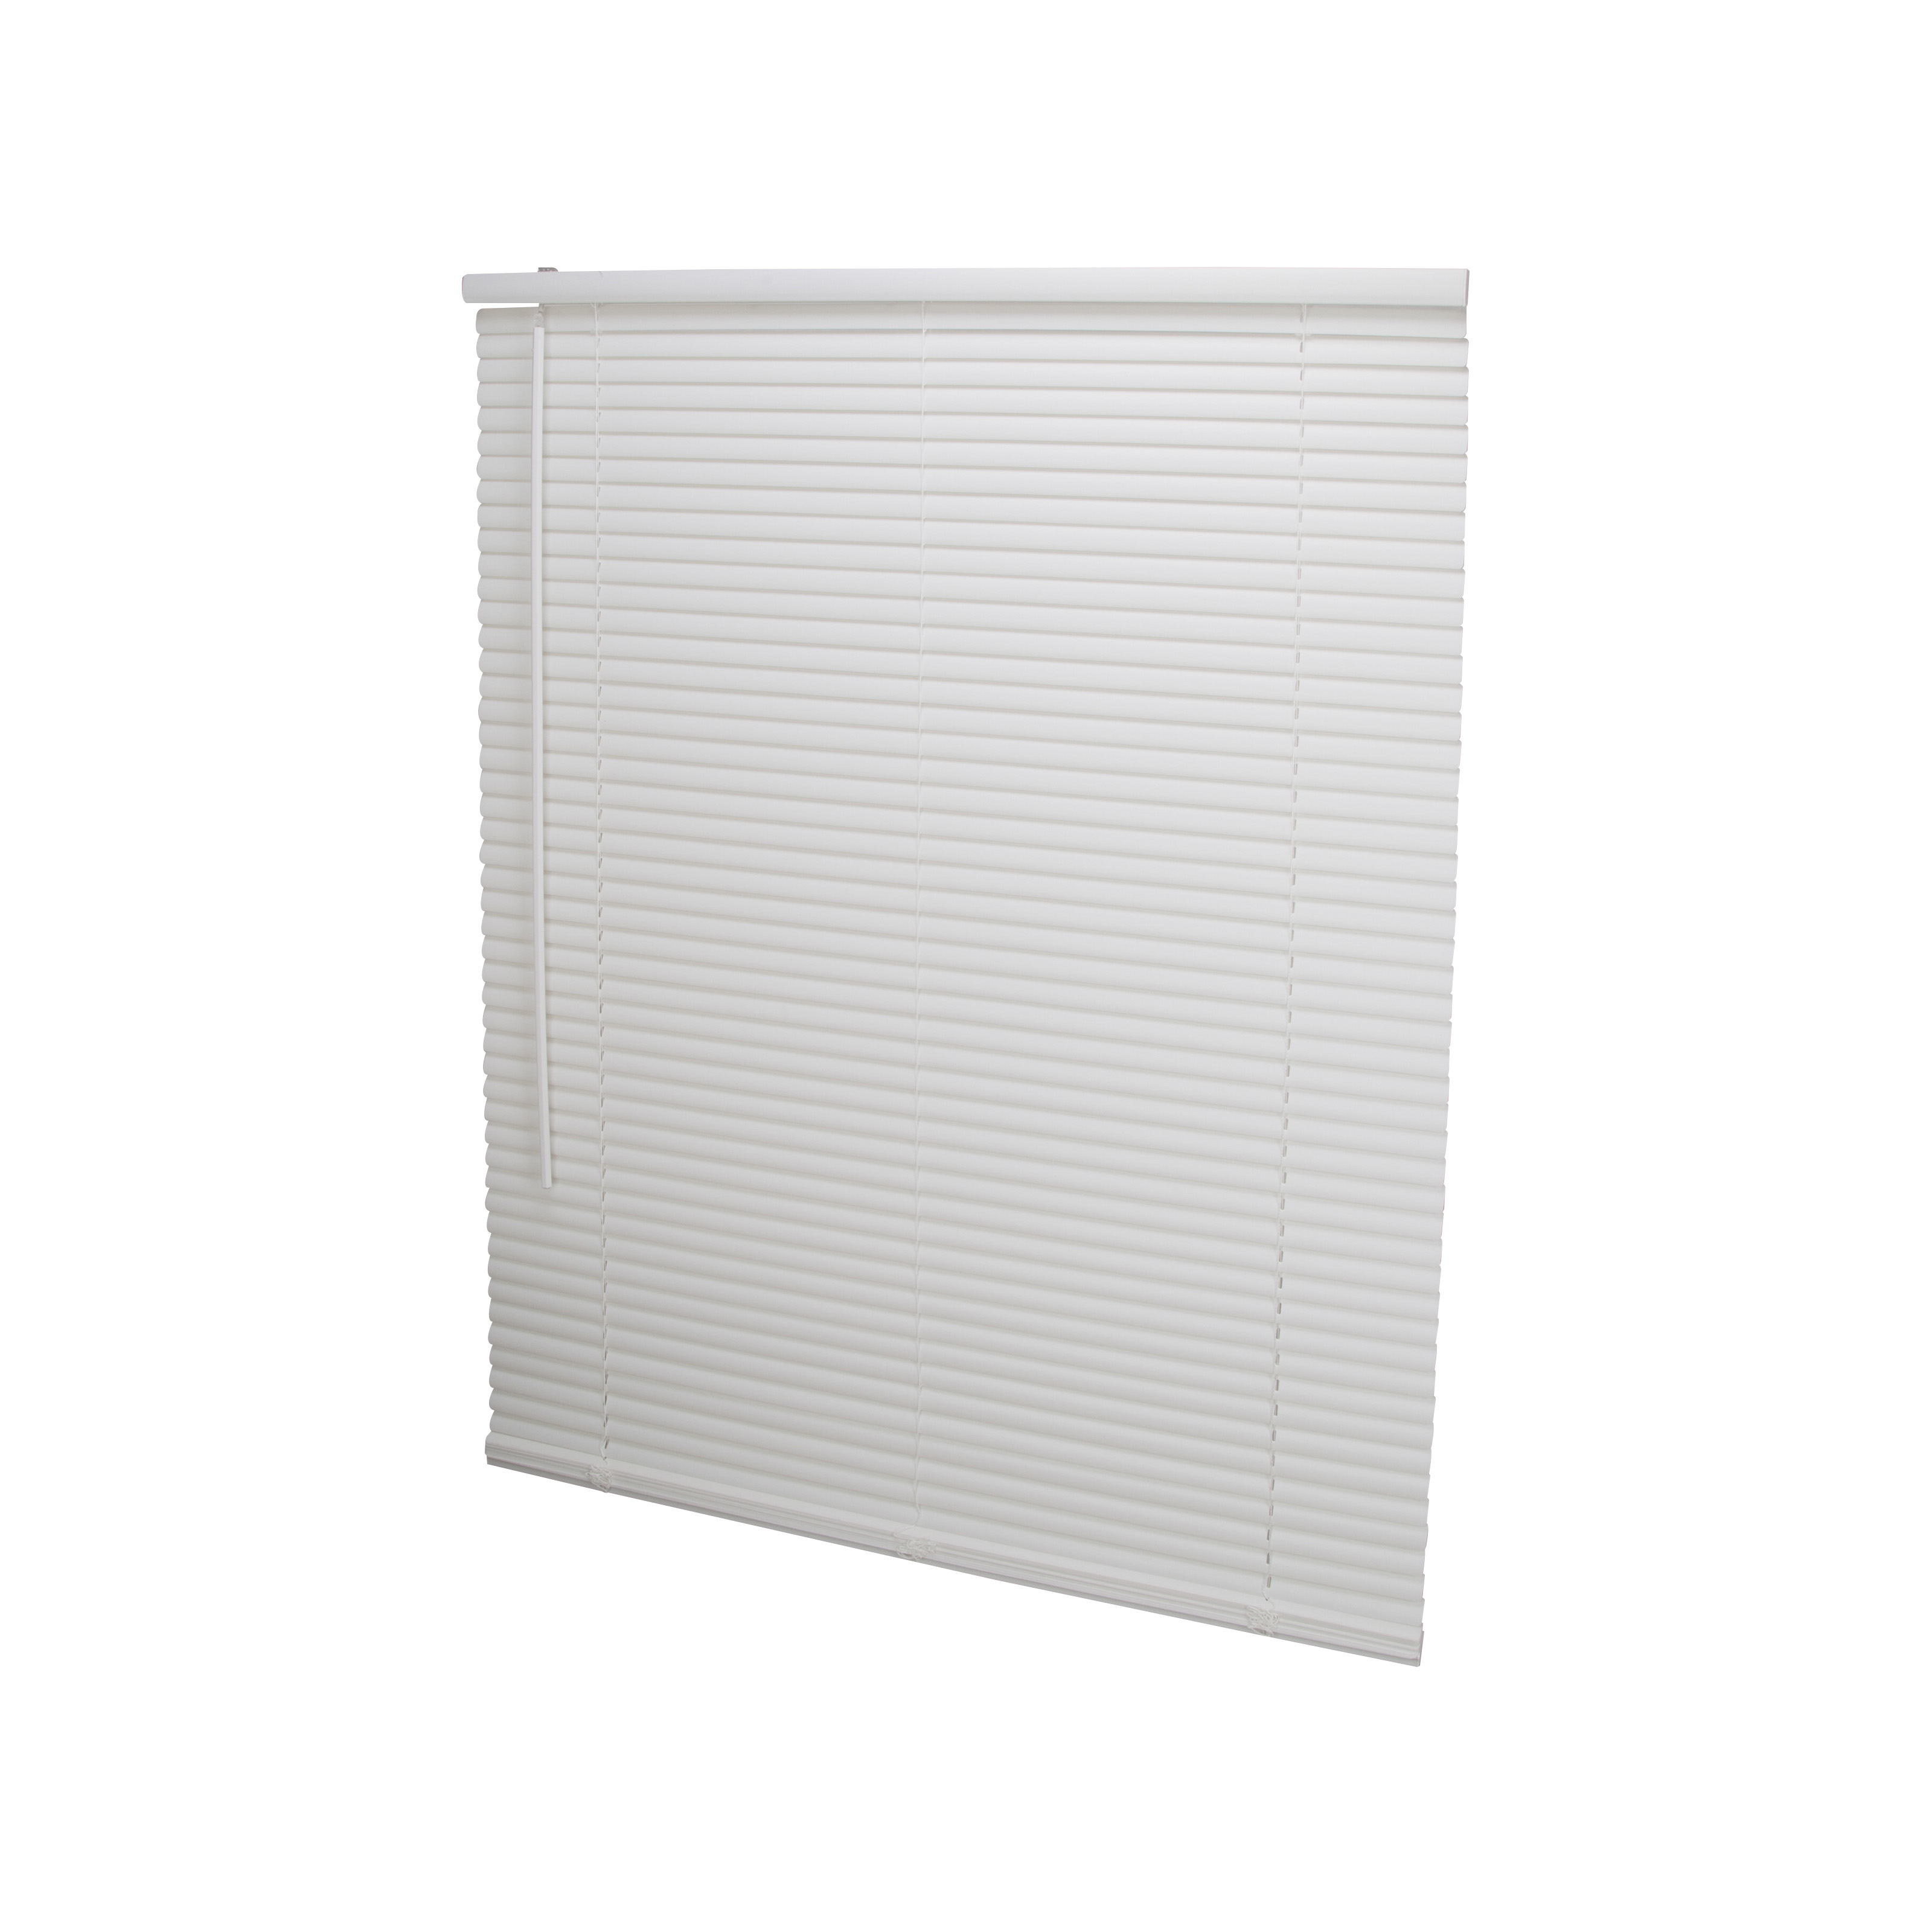 Picture of Simple Spaces PVCMB-12A Cordless Mini Blind, 64 in L, 39 in W, Vinyl, White